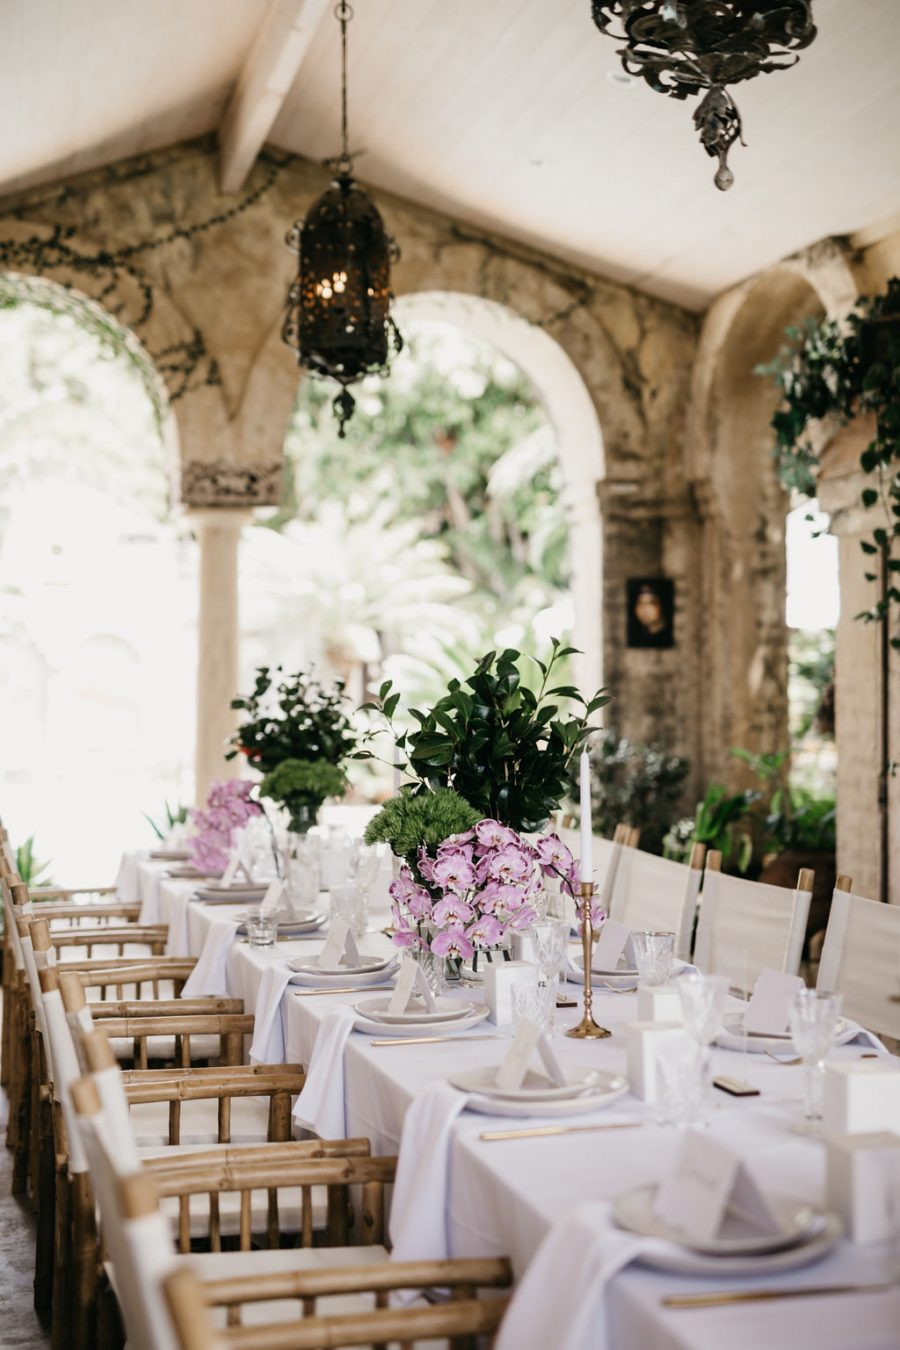 Wedding reception set up in rustic villa. Soft purple flowers and cane chairs.